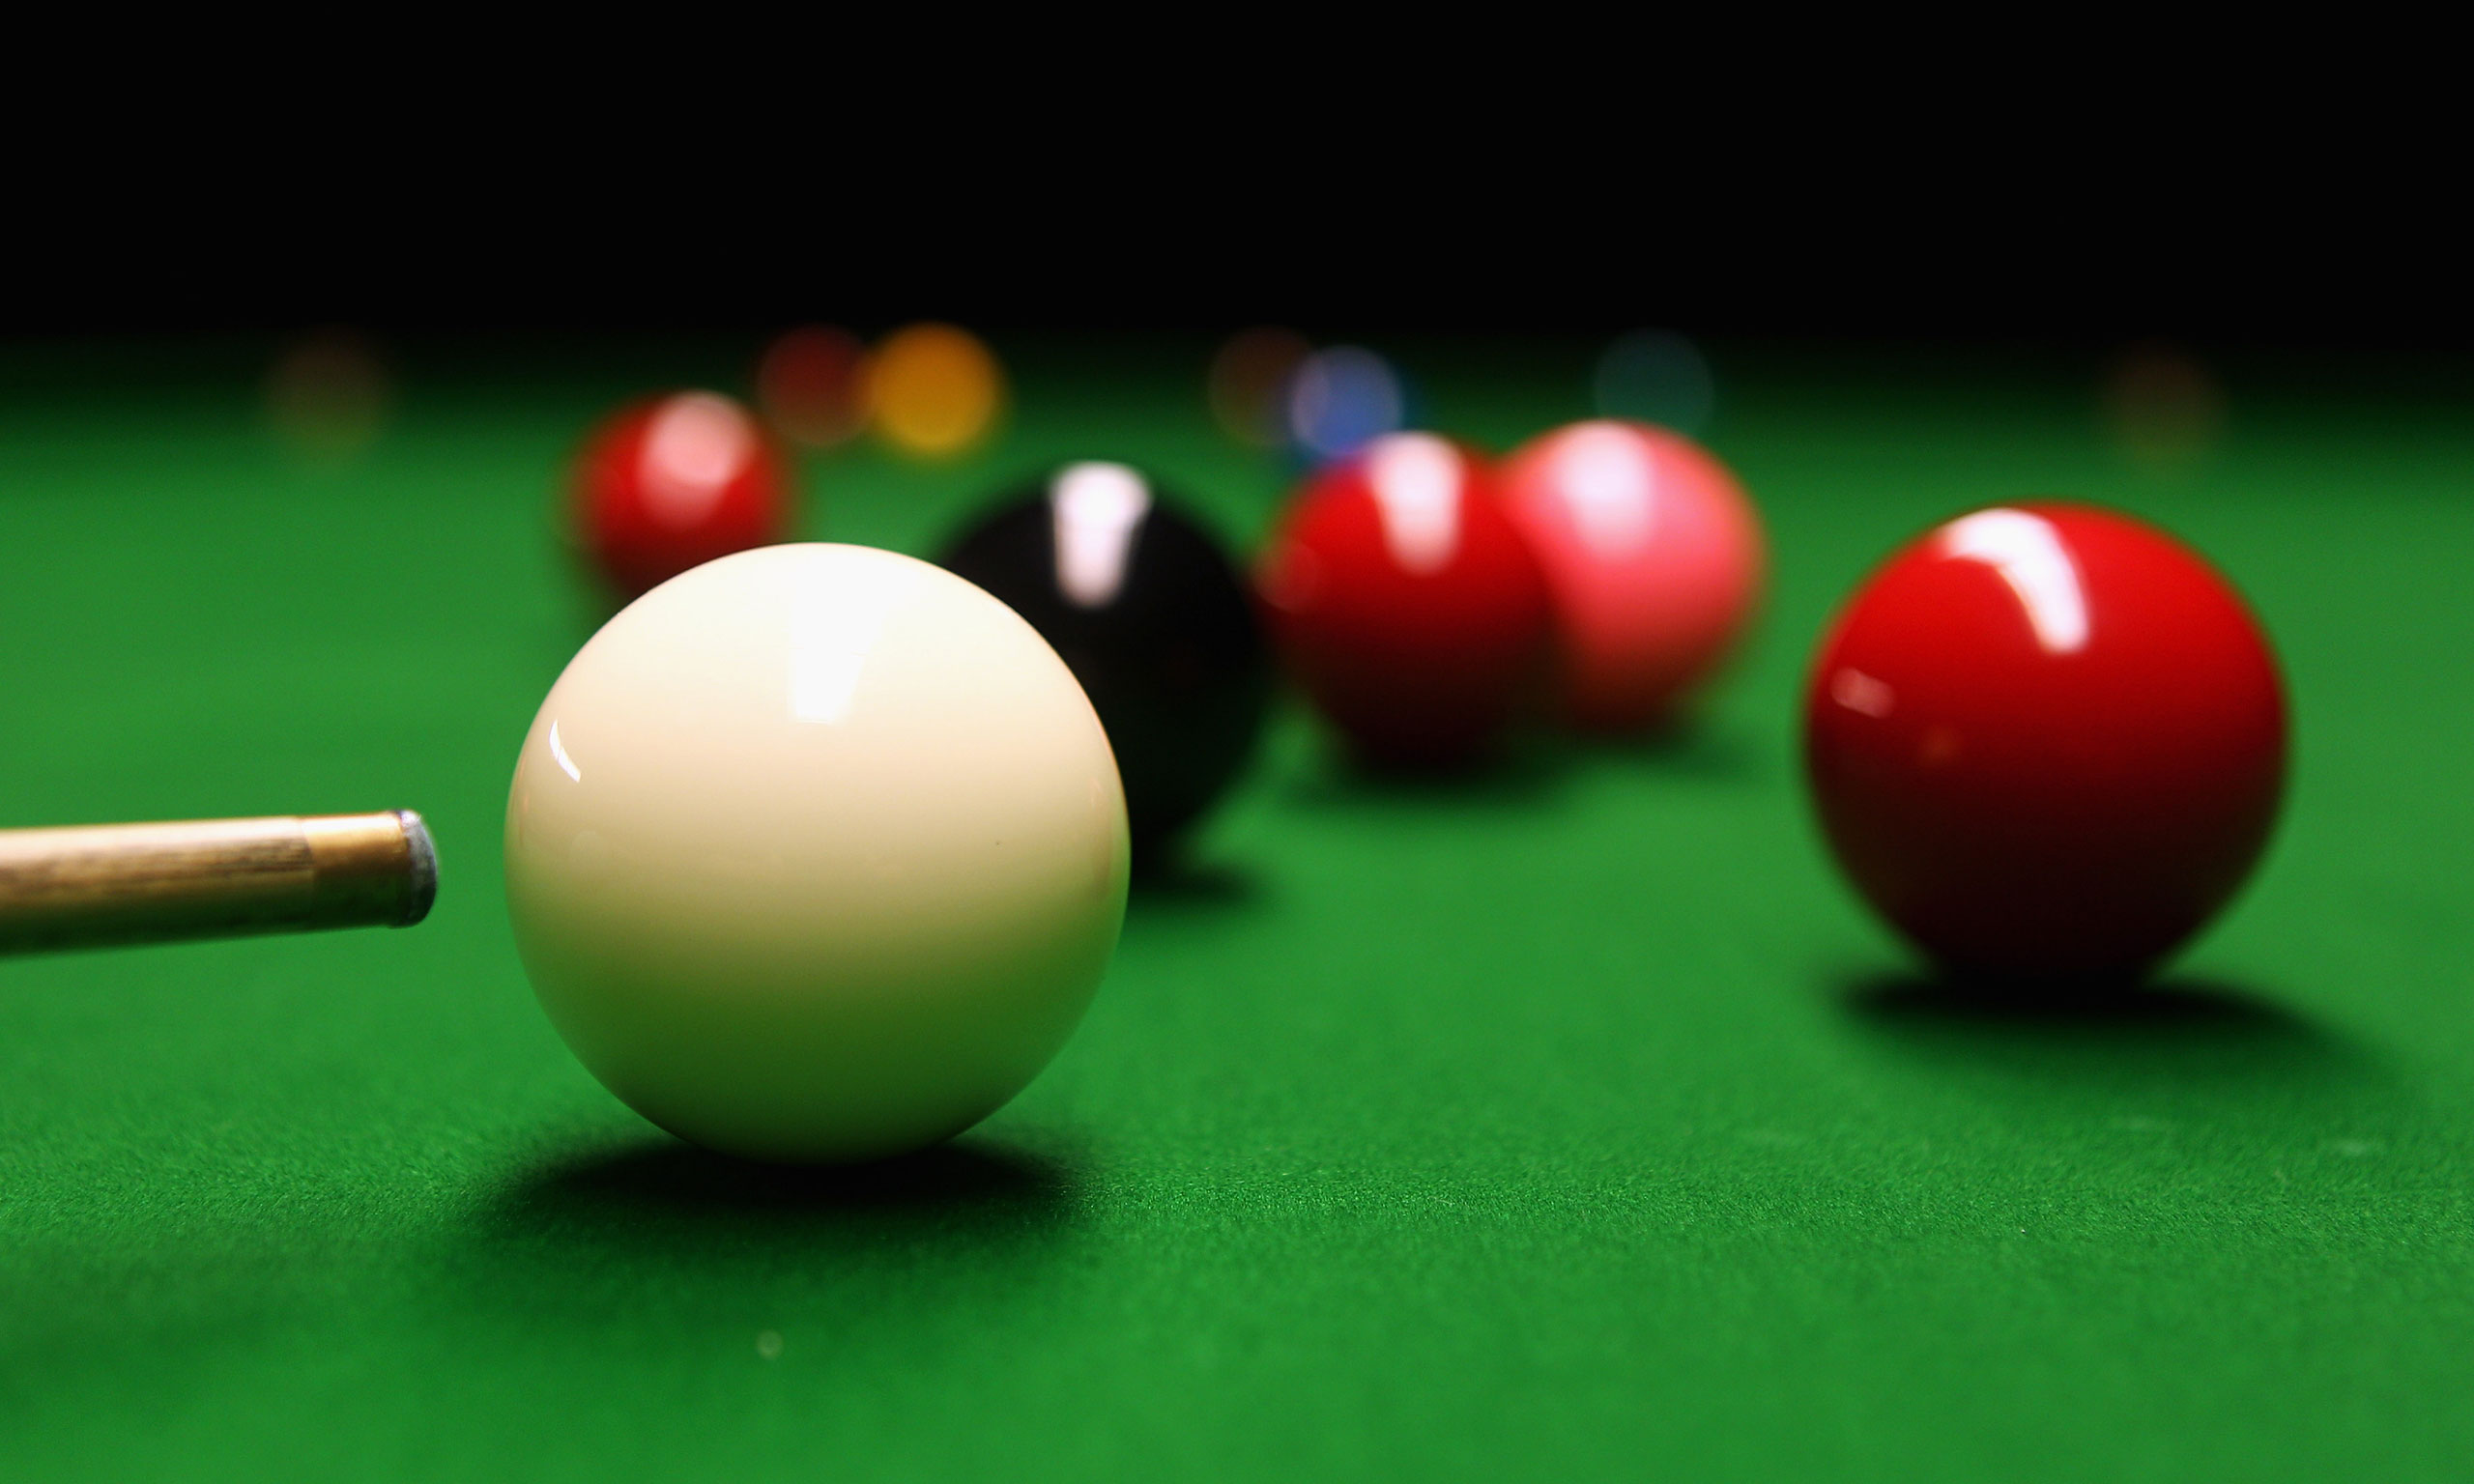 snooker shot